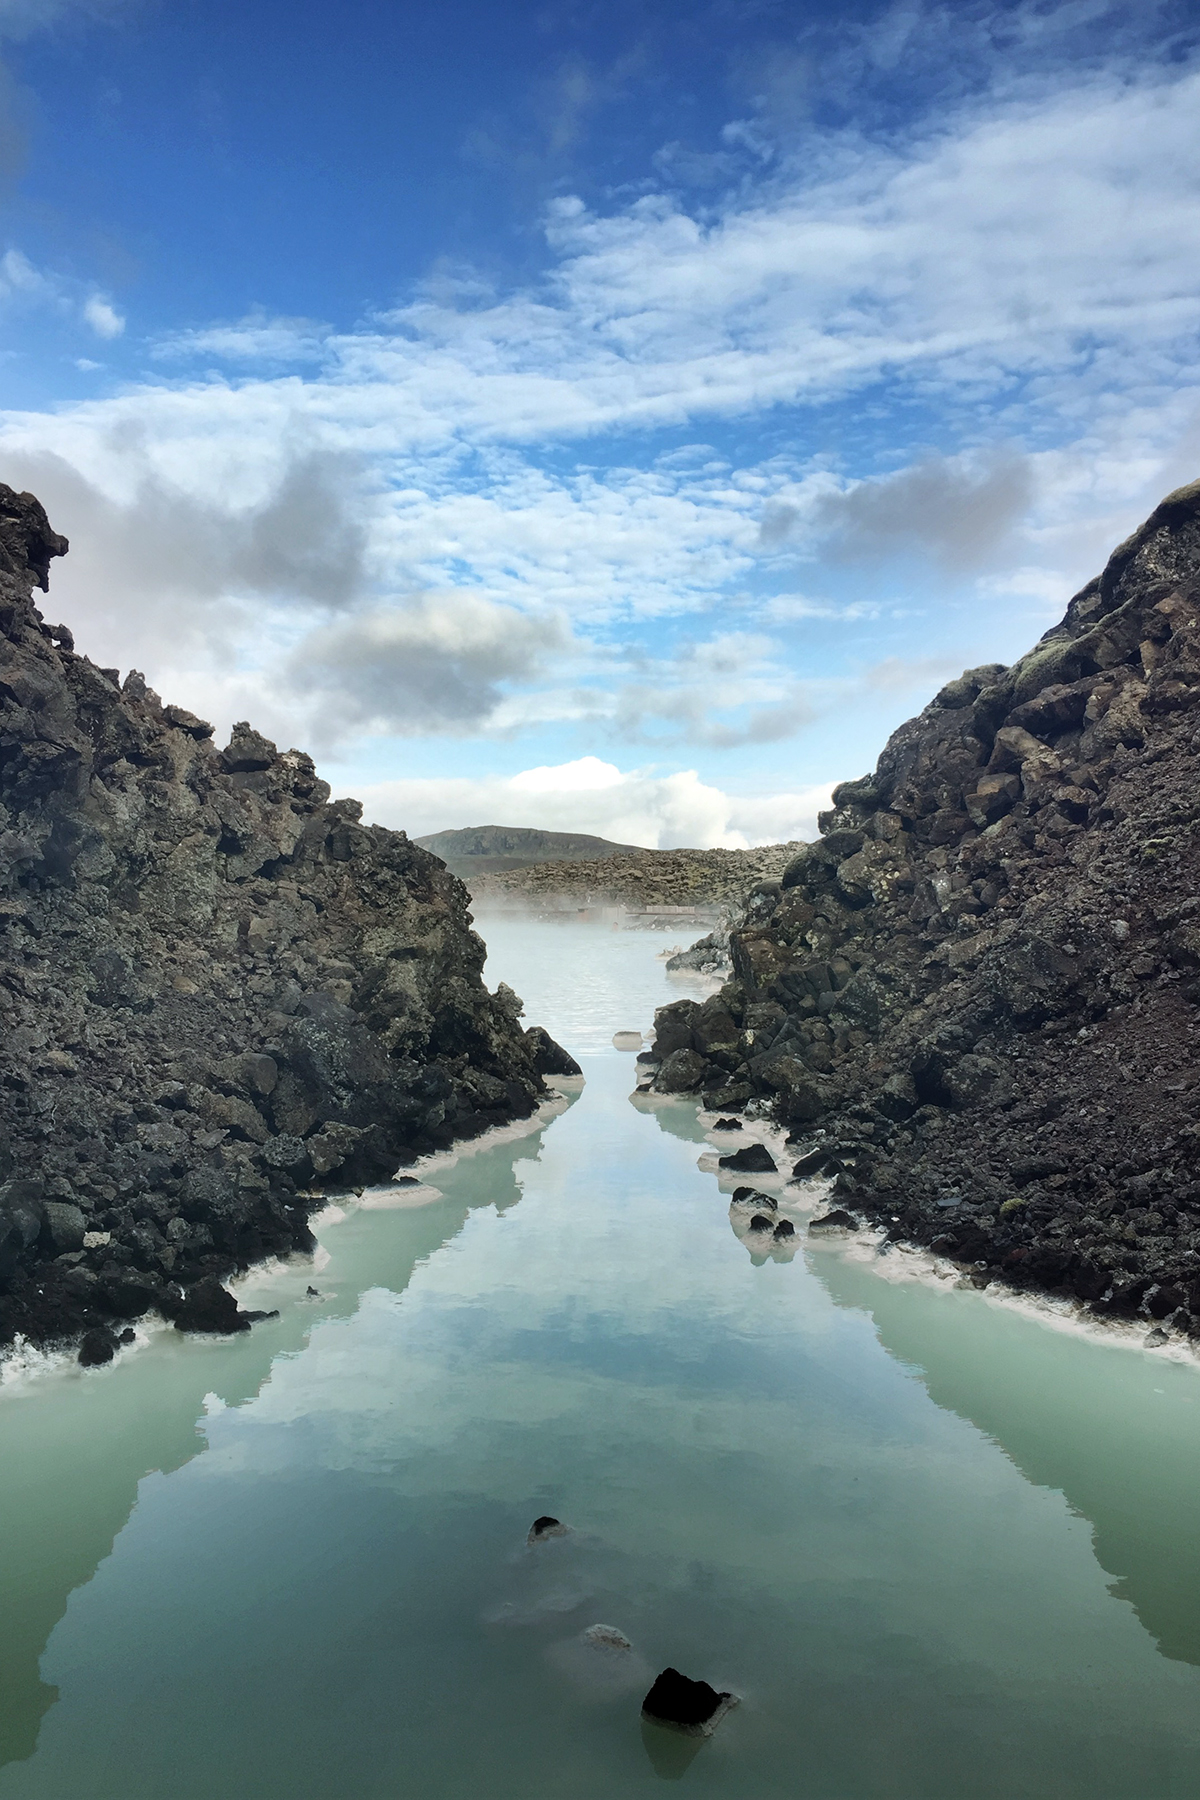 Our fifth and final soak was the famous Blue Lagoon.